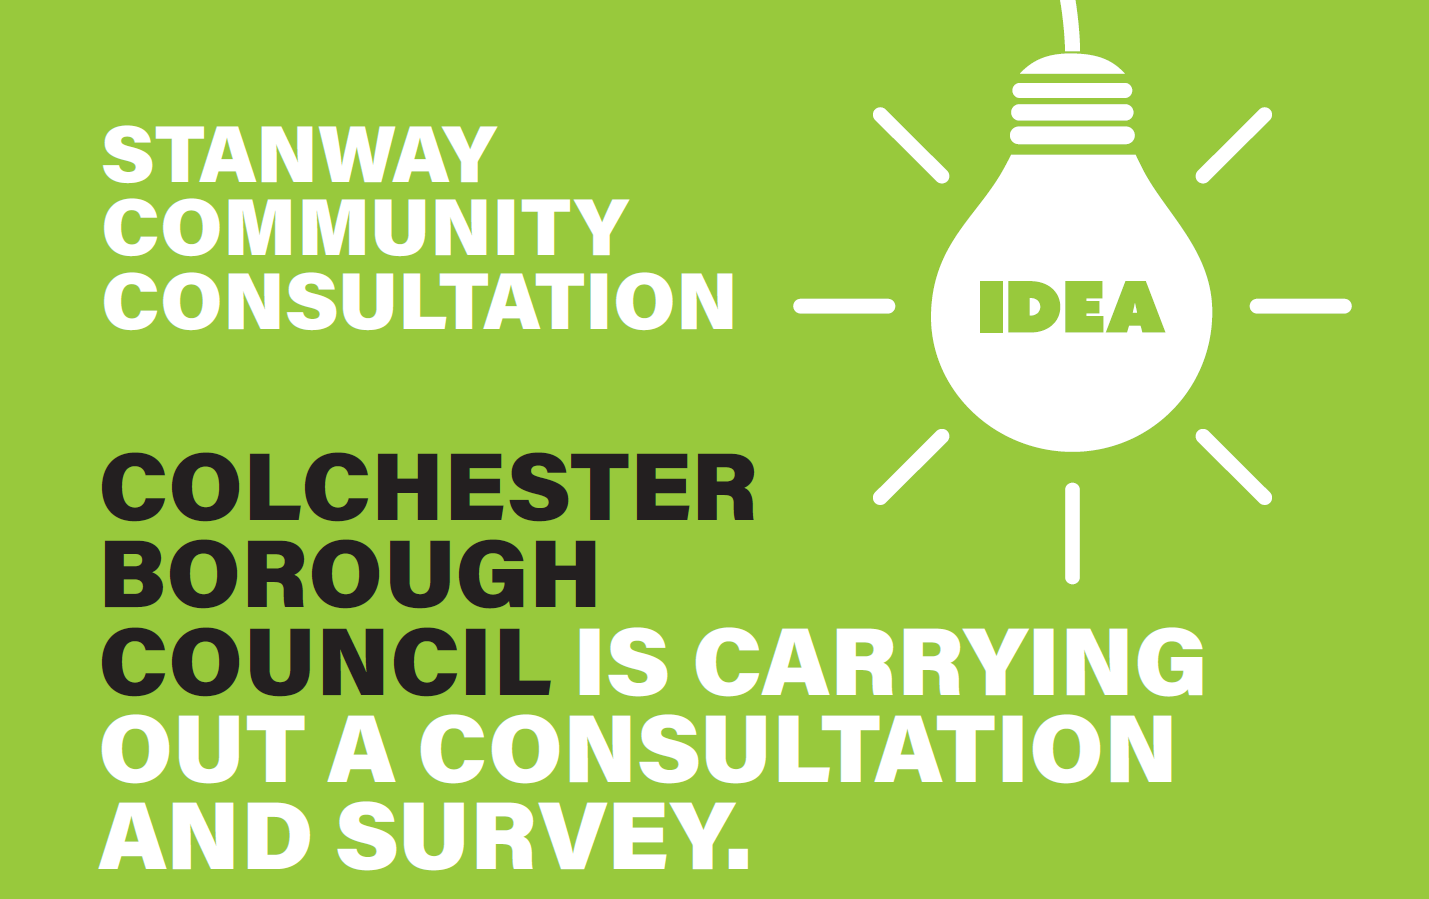 Colcheset Borough Council is carrying out a consultation and survey